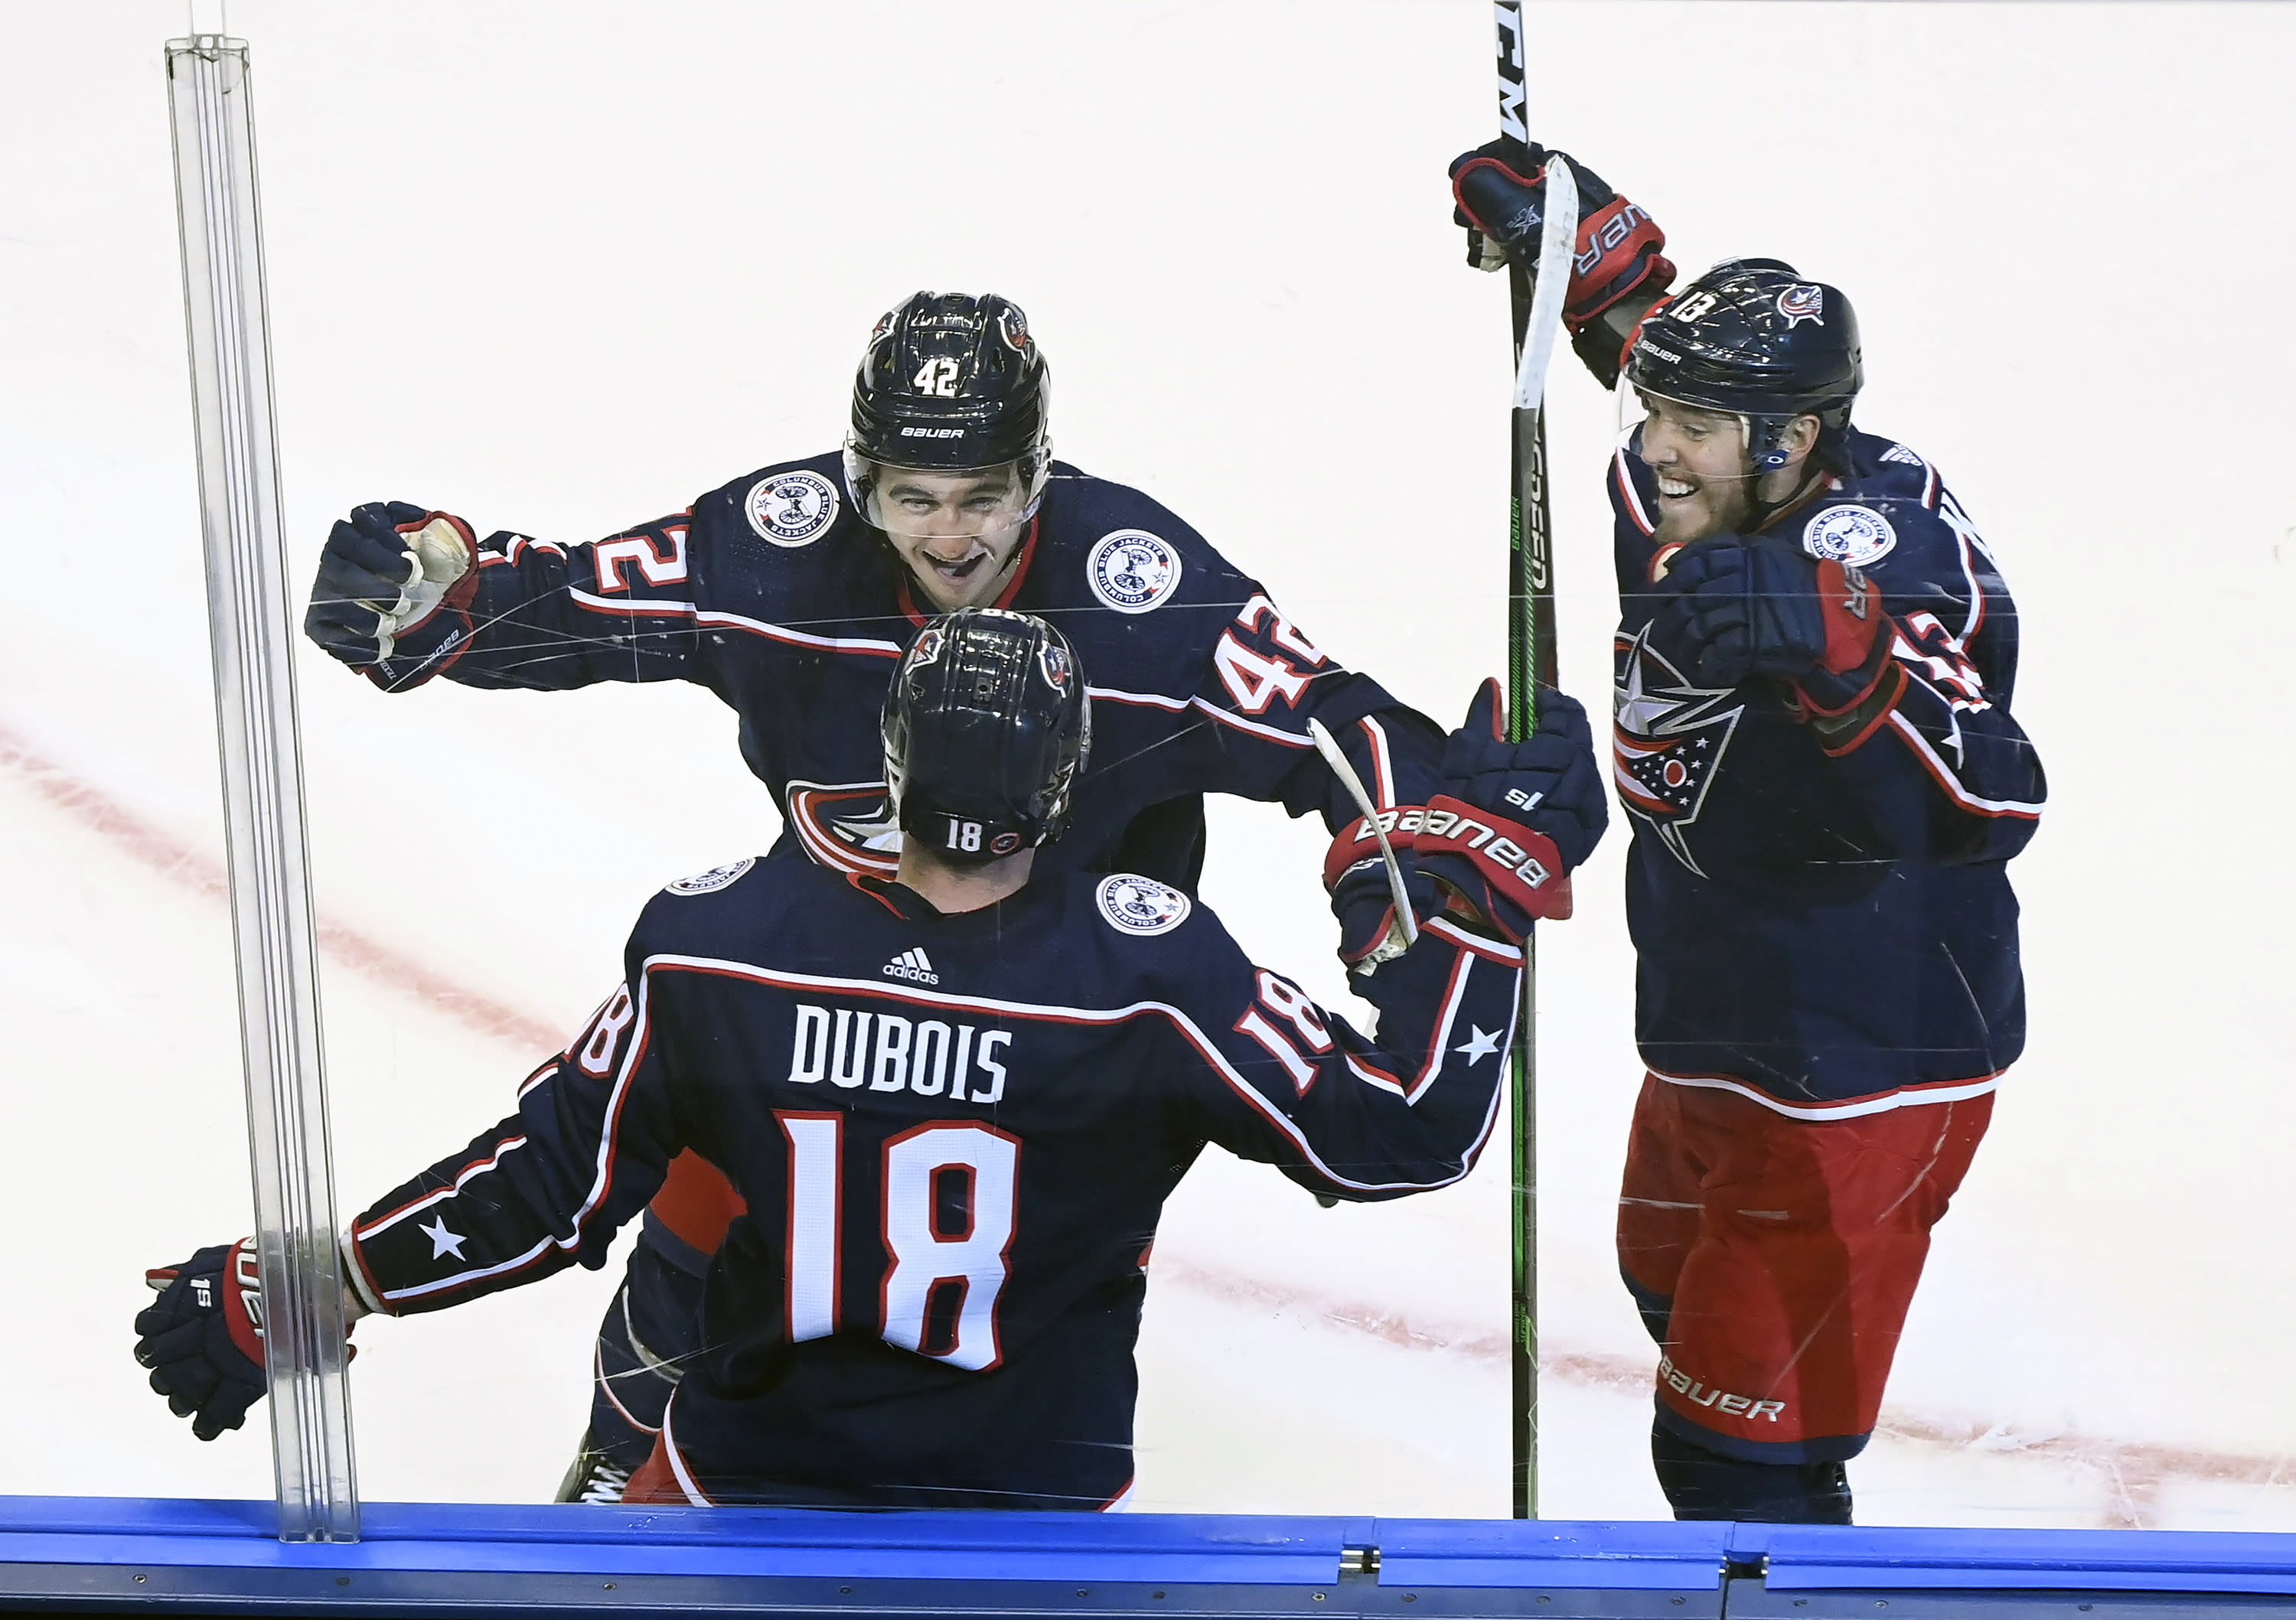 Columbus Blue Jackets center Pierre-Luc Dubois (18) celebrates his game winning goal against the Toronto Maple Leafs with teammates Alexandre Texier (42) and Cam Atkinson (13) during overtime in an NHL hockey playoff game Thursday, Aug. 6, 2020, in Toronto. (Nathan Denette/The Canadian Press via AP)